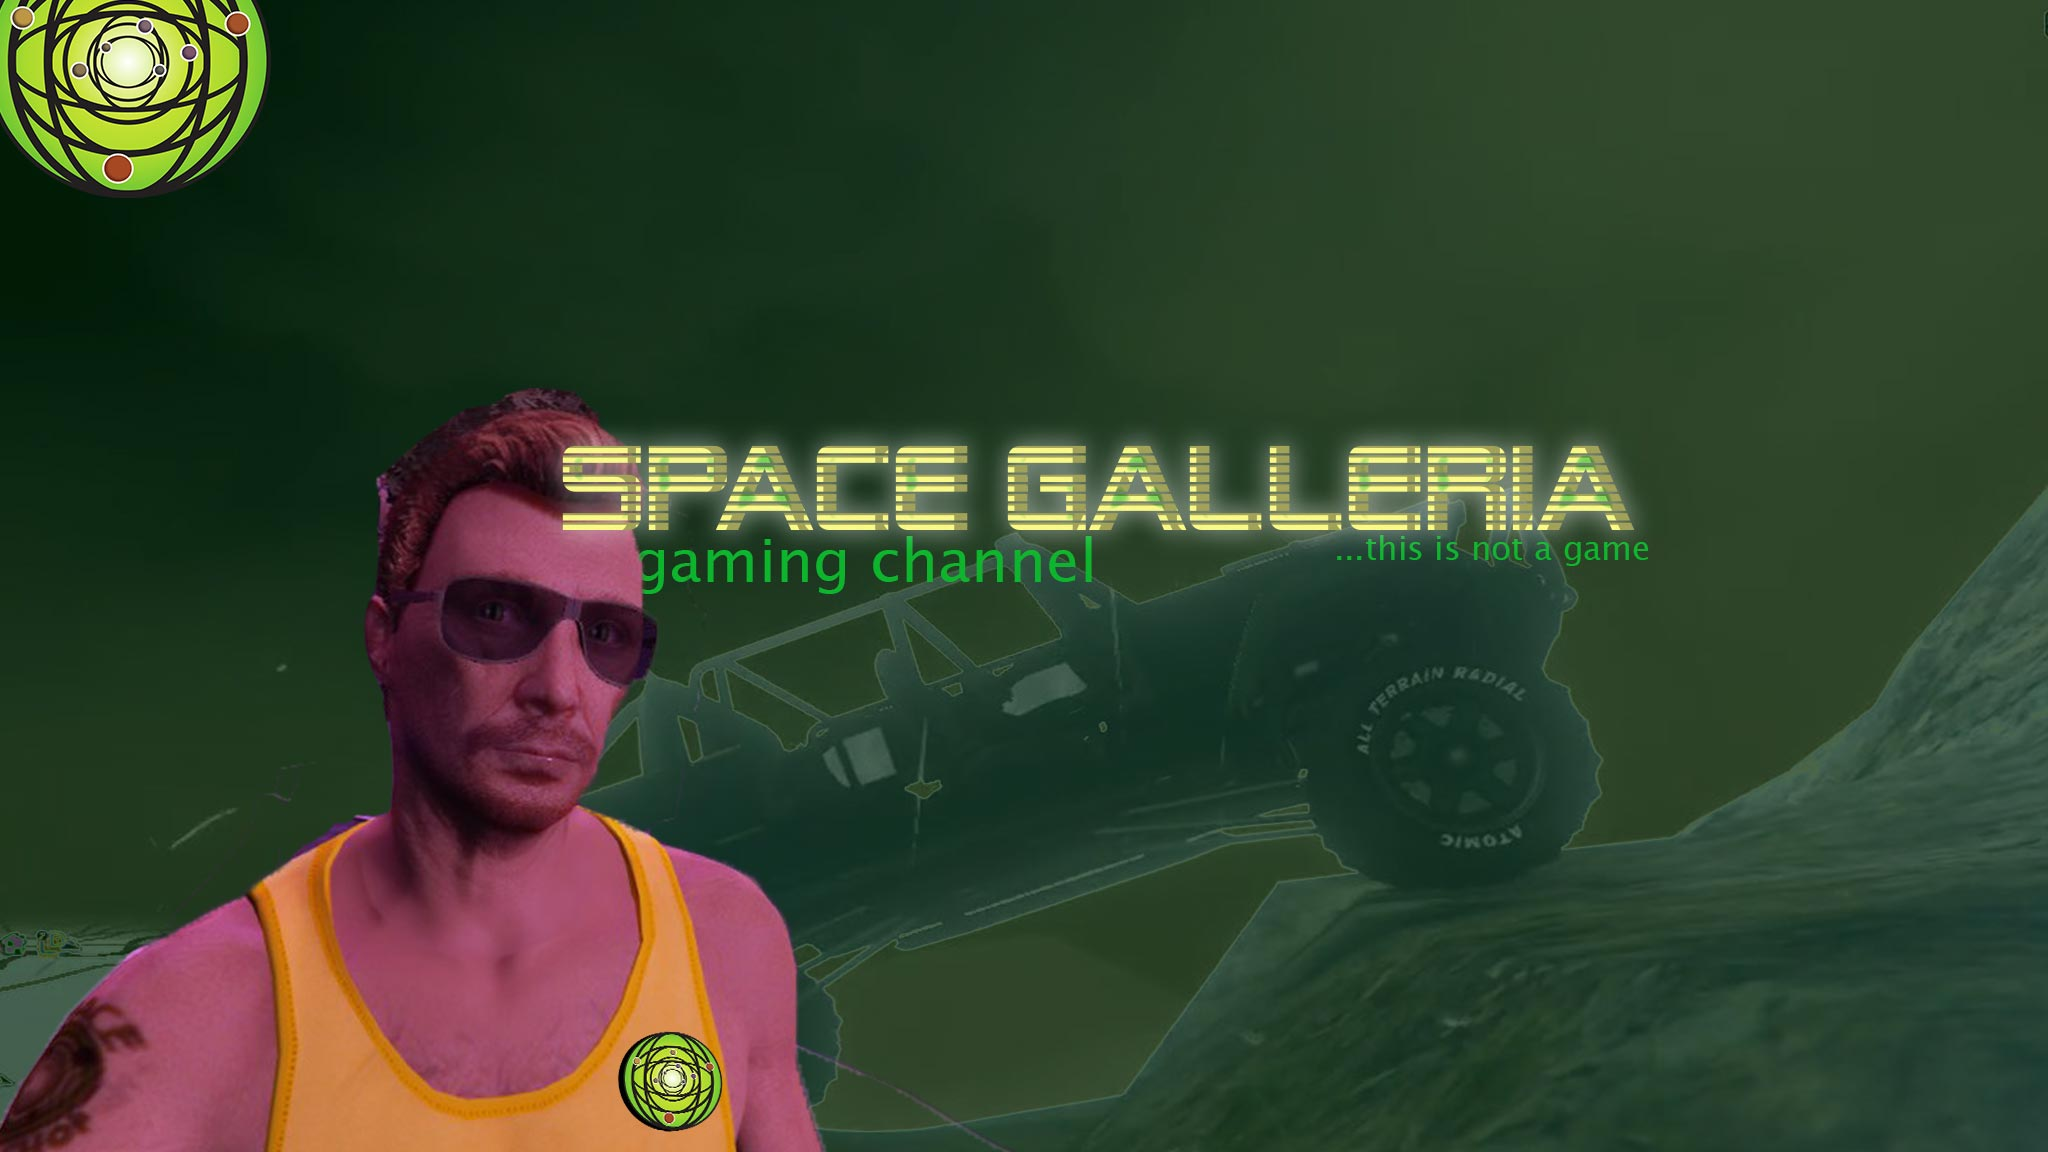 Space Galleria Gaming Channel ...this is not a game.